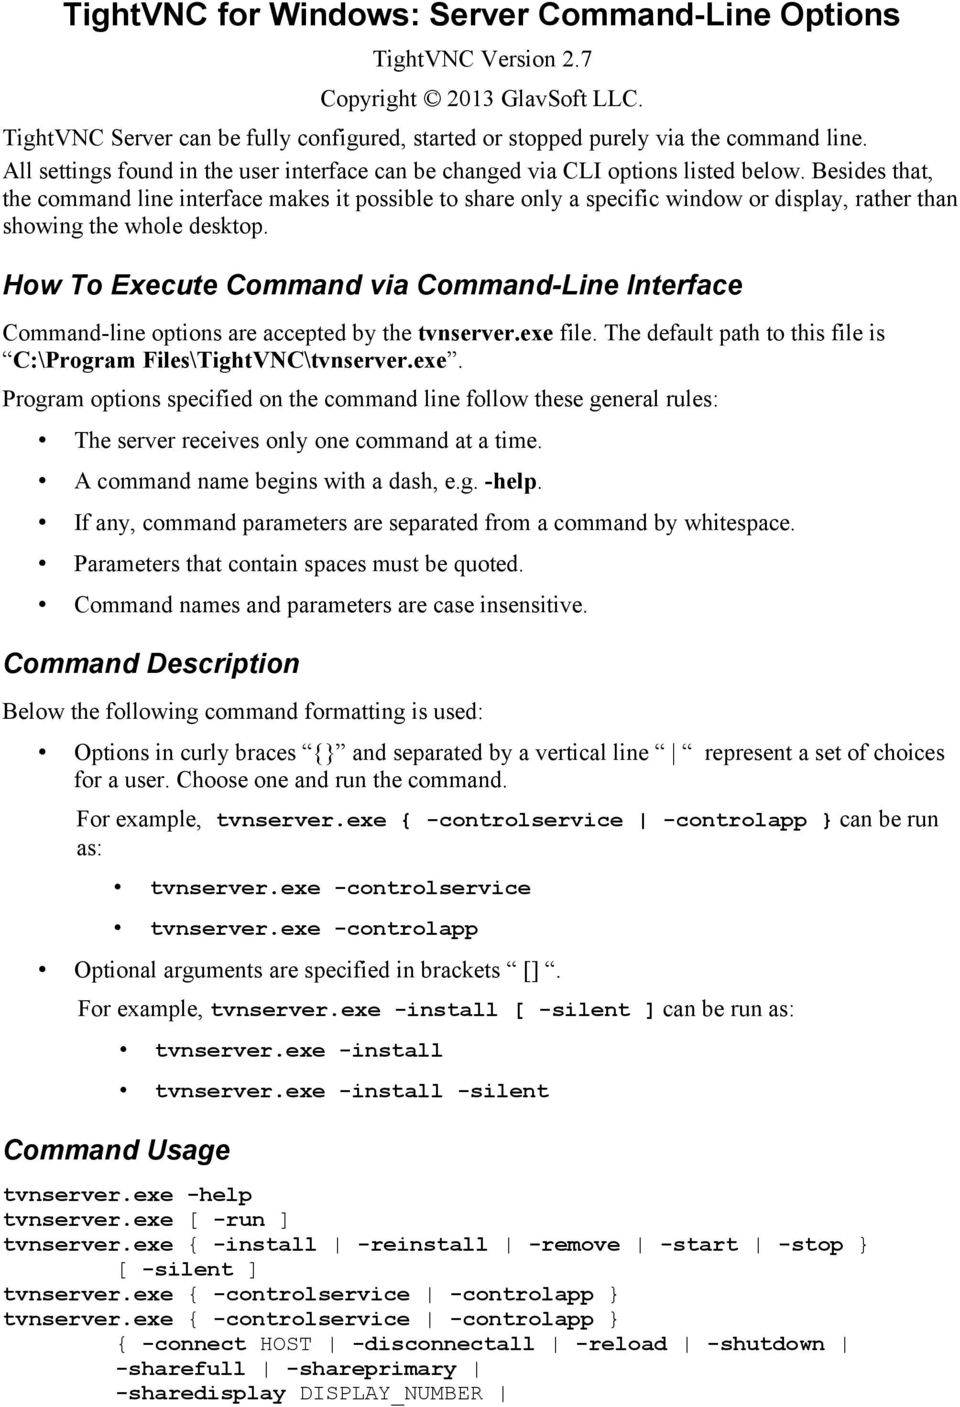 TightVNC for Windows: Server Command-Line Options - PDF